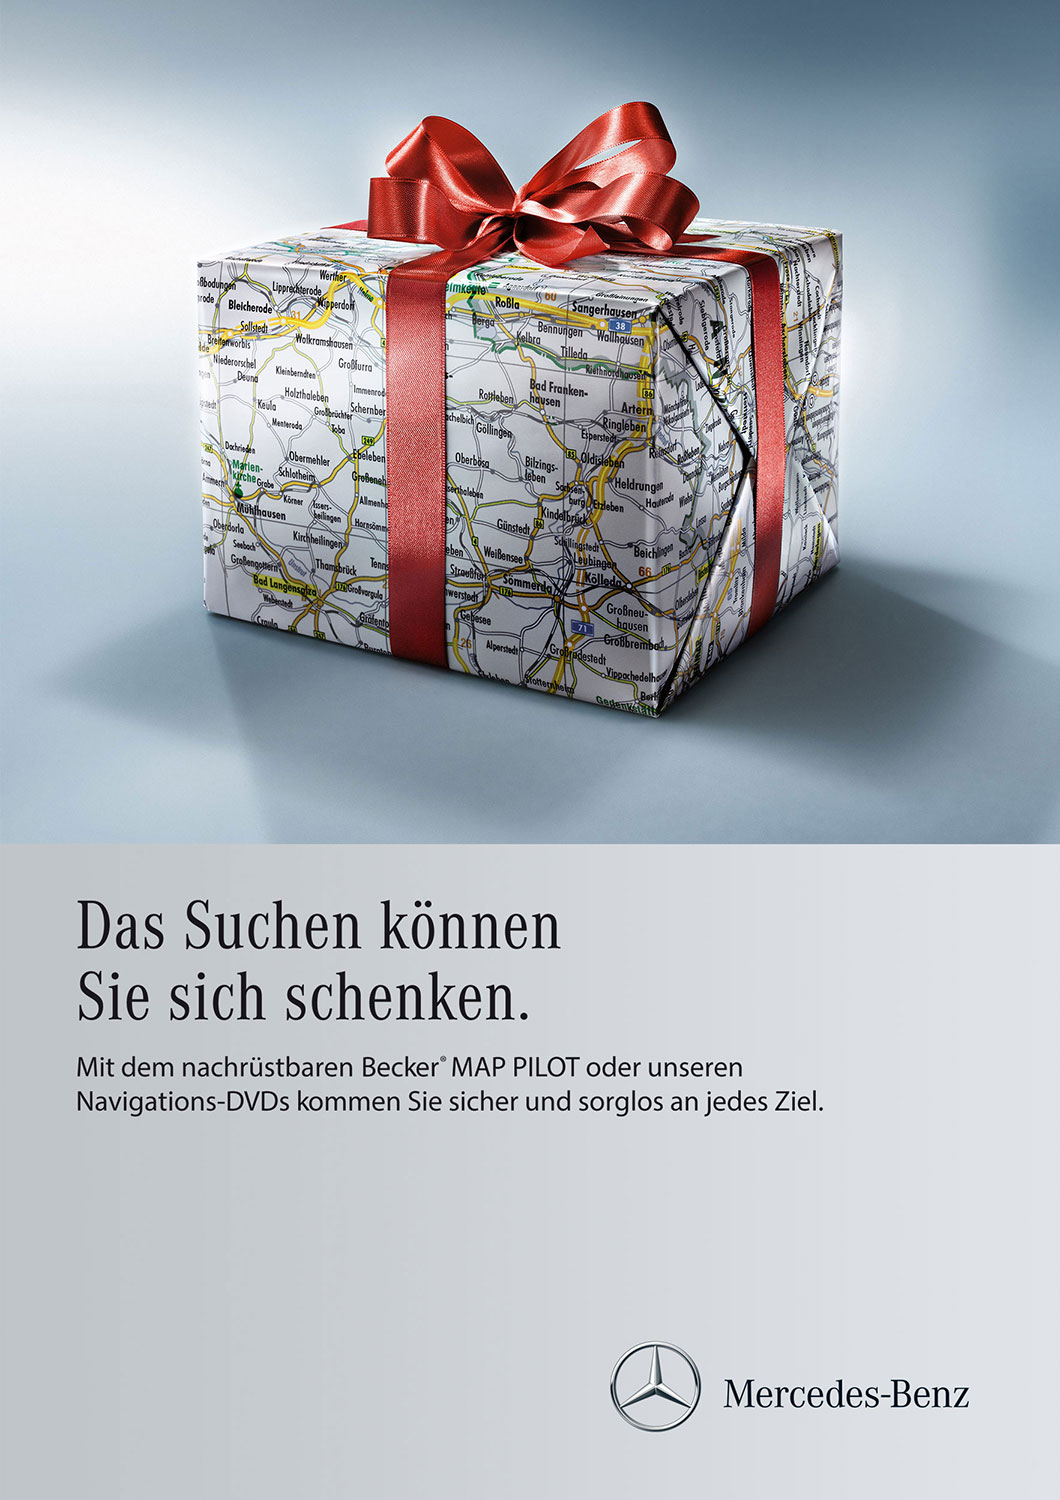 Advertising Still life Photographie Fotografie Studio Mercedes Benz Services Navigation Geschenk Paket Schleife Idris Kolodziej